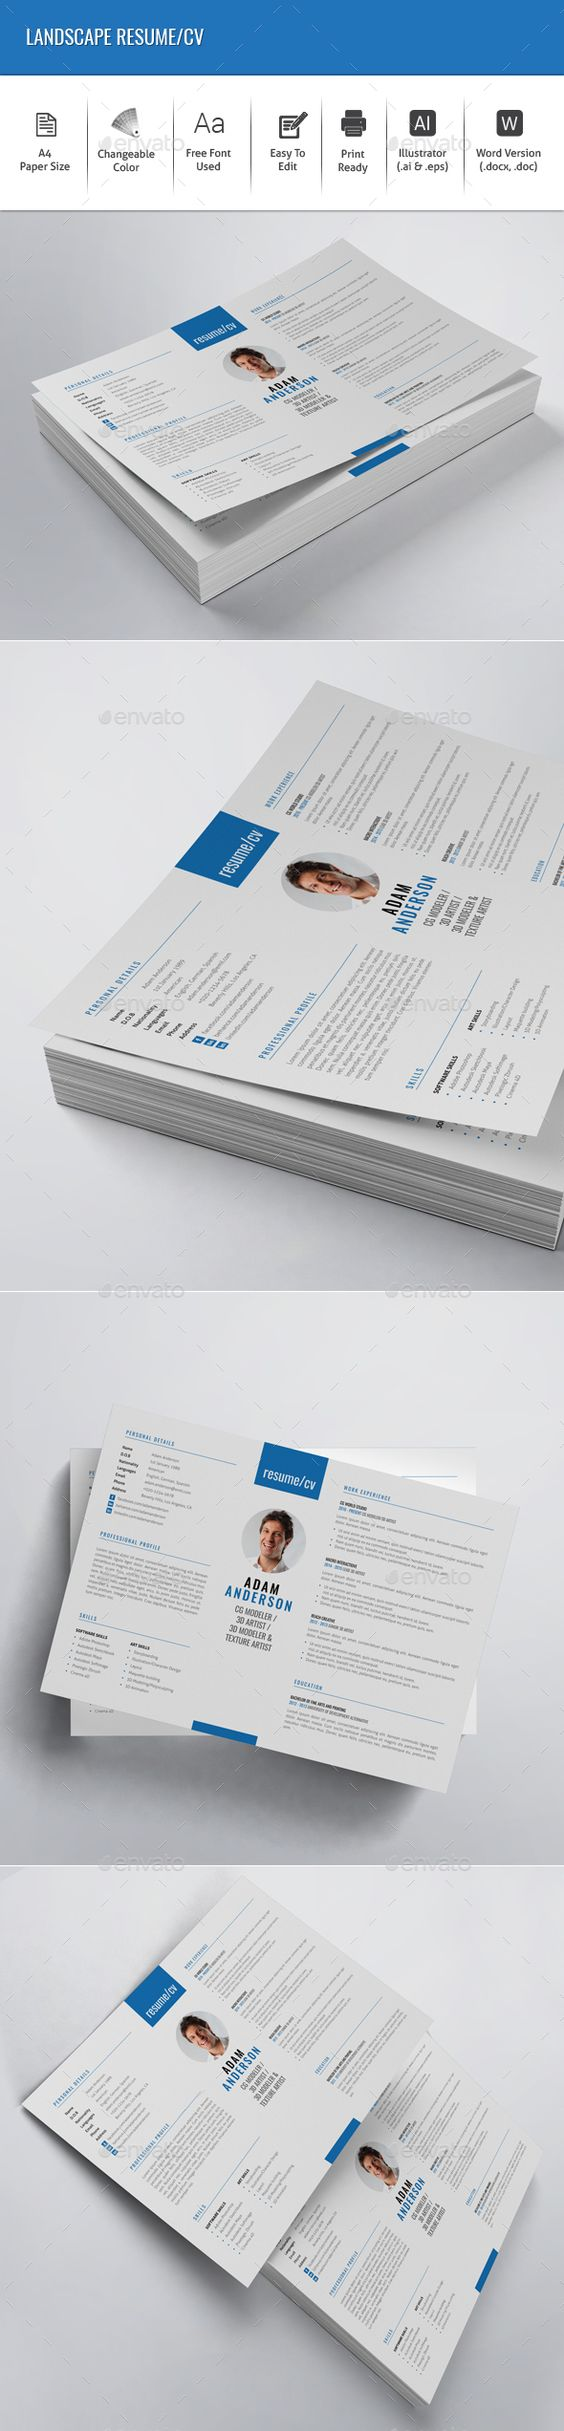 landscape resume cv landscapes landscape resume cv resumes stationery here graphicriver